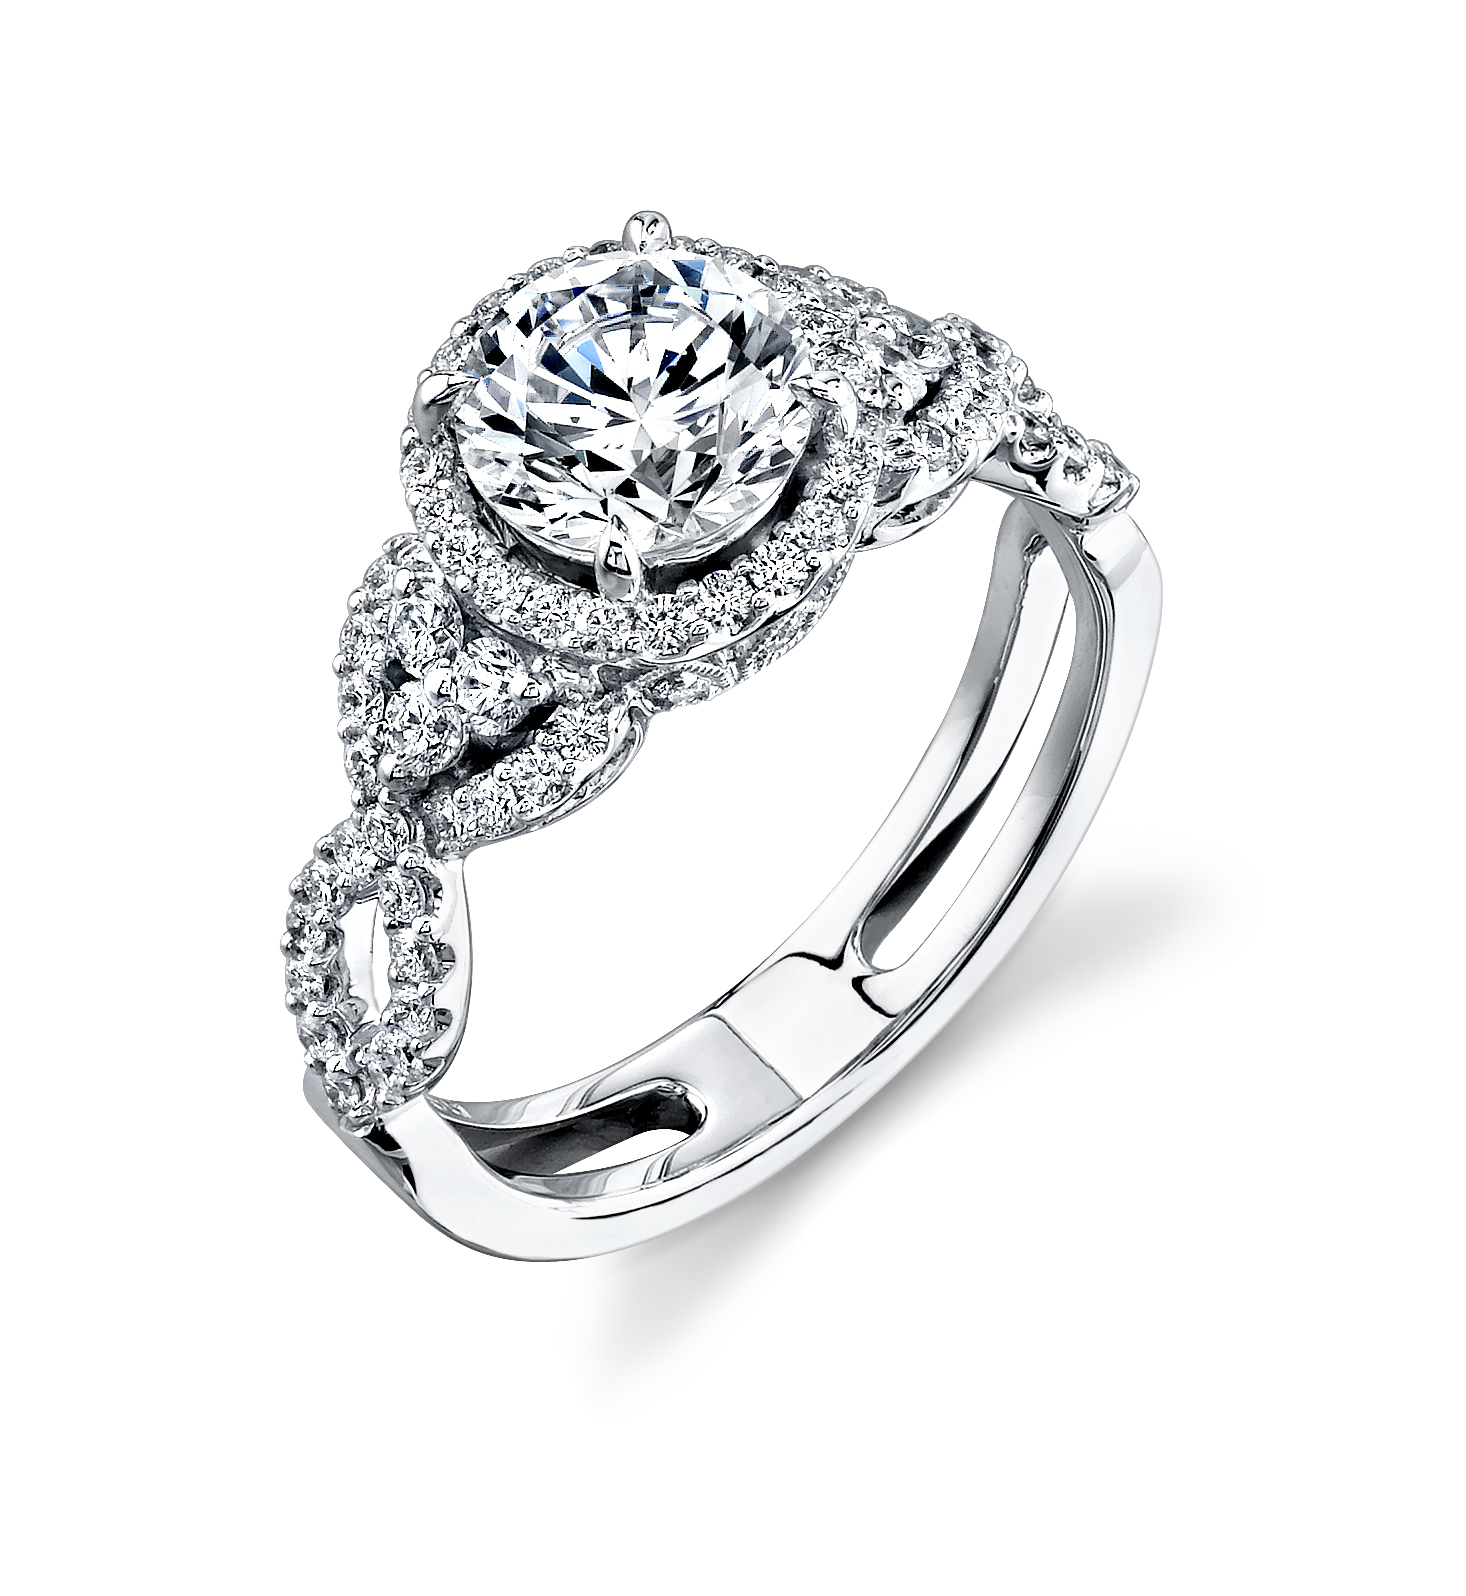 What is your engagement ring? (GIRLS ONLY) | Playbuzz